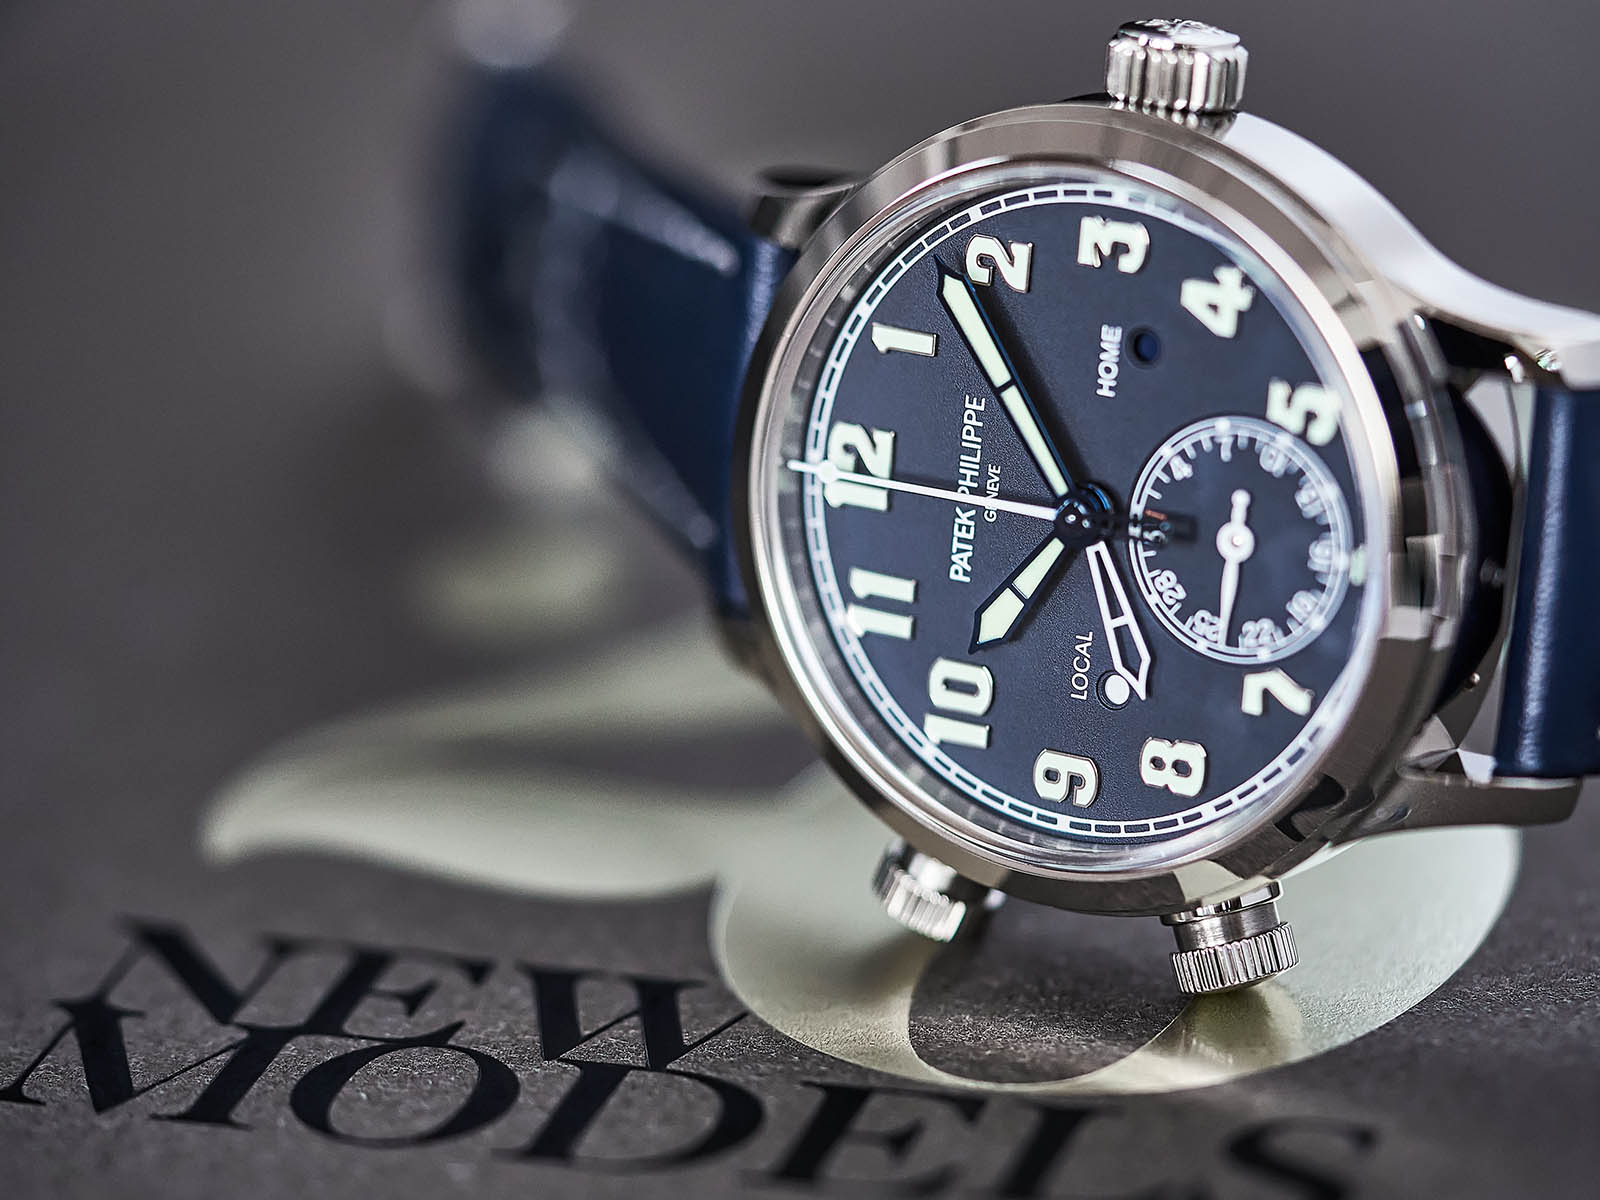 7234g-001-patek-philippe-calatrava-pilot-travel-time-3.jpg